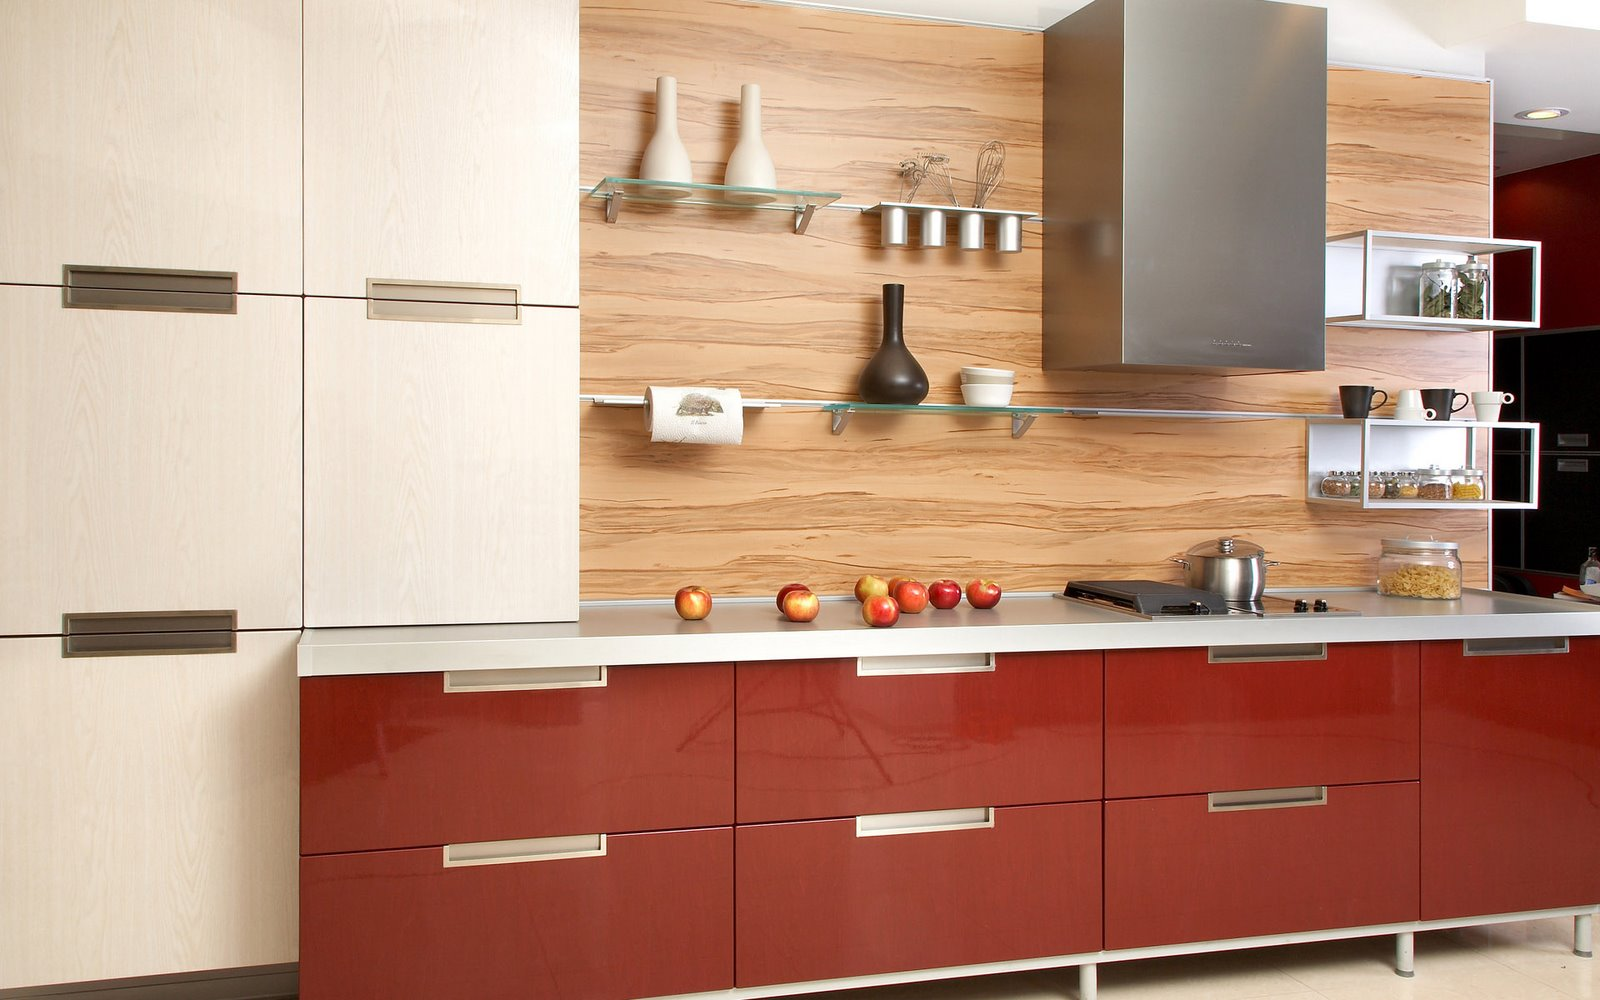 Contemporary Kitchen Design Stainless Steel Sinks Undermount Cabinets Afreakatheart